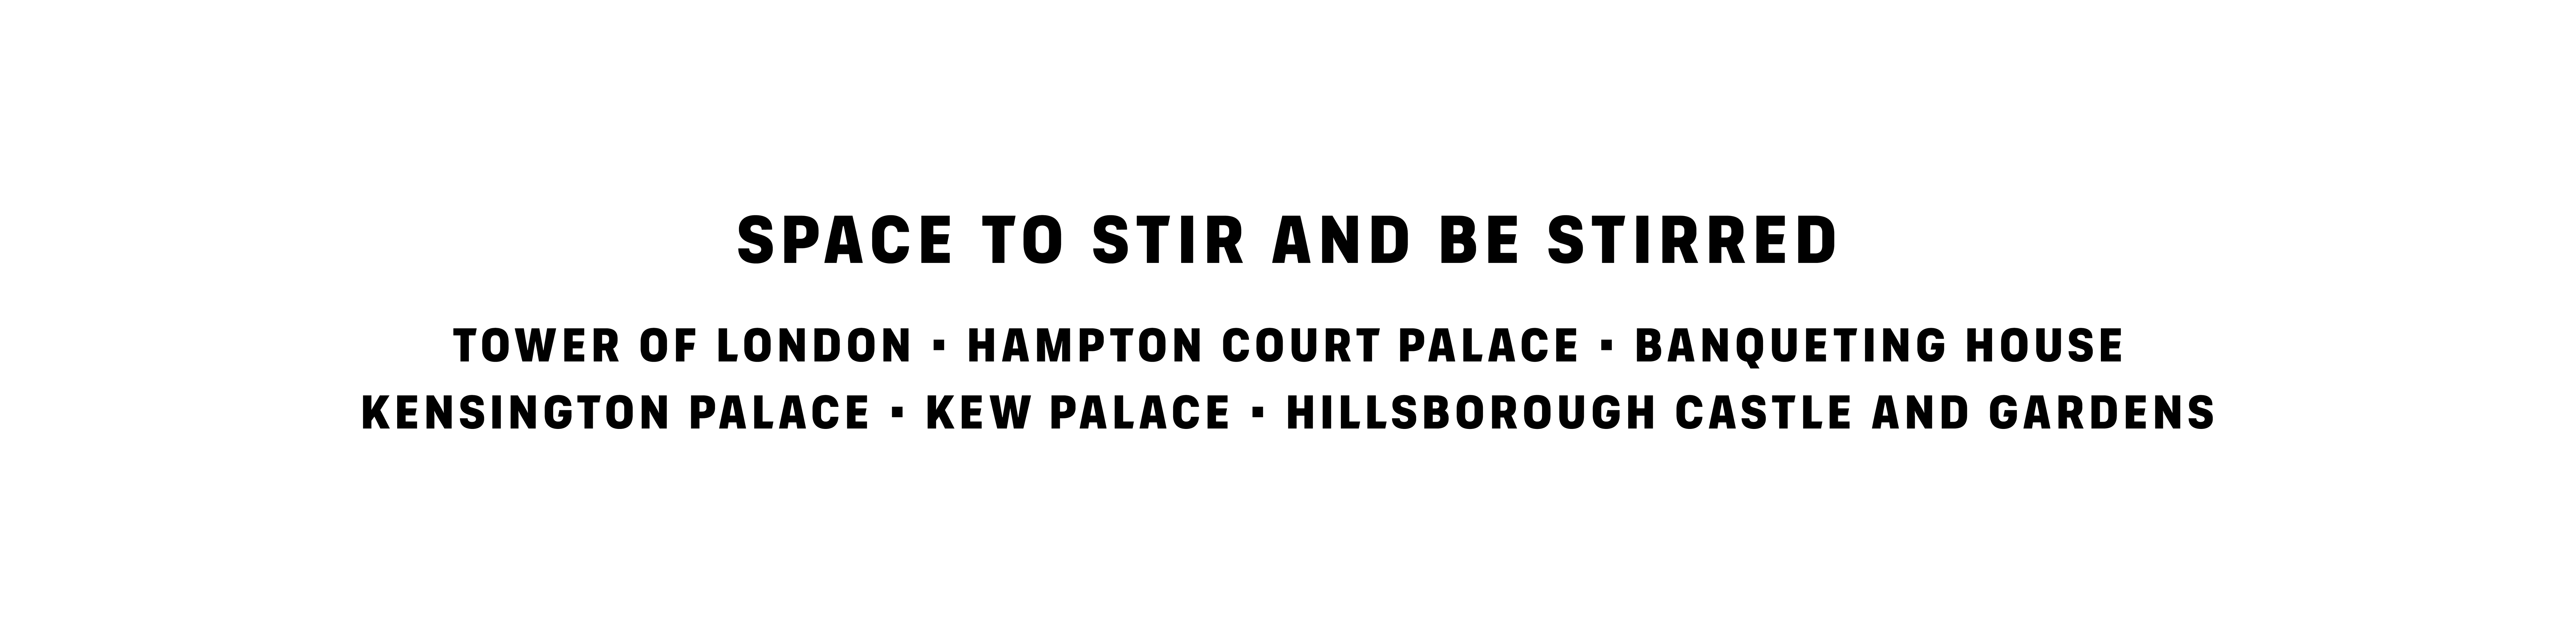 A list of palaces managed by Historic Royal Palaces: Tower of London, Hampton Court Palace, Banqueting House, Kensington Palace, Kew Palace, Hillsborough Castle and Gardens